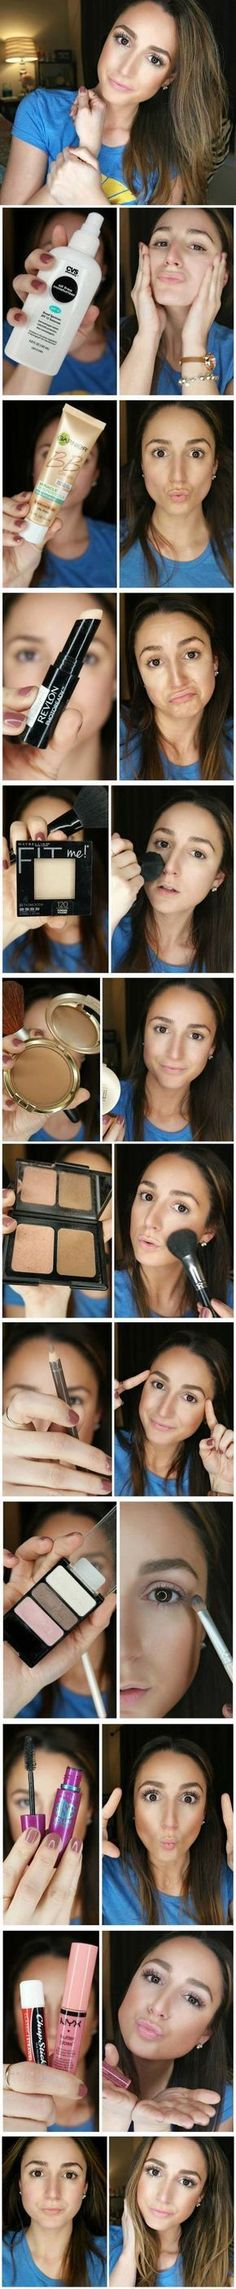 Best Makeup Tutorials for Teens -5 Minute Everyday Makeup Routine - Easy Makeup Ideas for Beginners - Step by Step Tutorials for Foundation, Eye Shadow, Lipstick, Cheeks, Contour, Eyebrows and Eyes